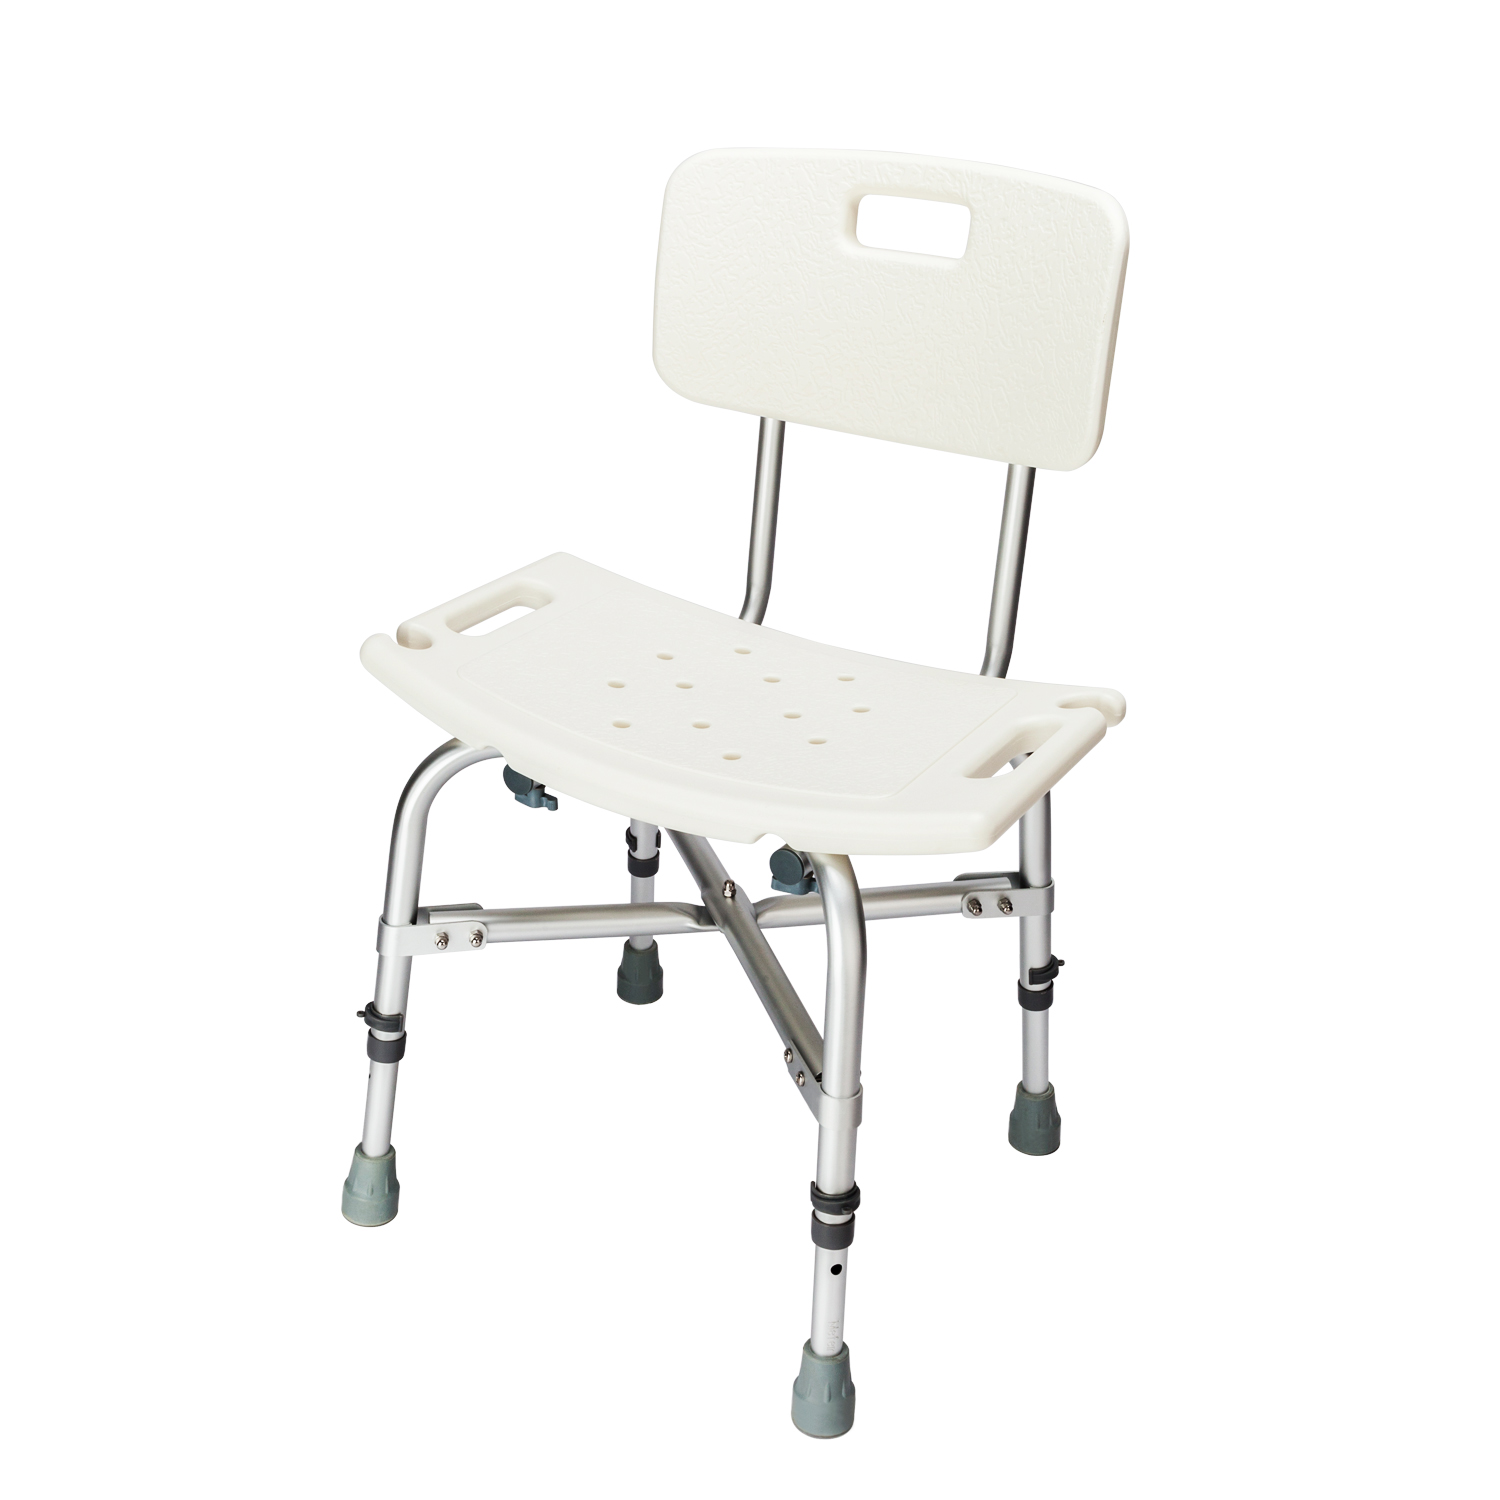 Adjustable Heavy-duty Medical Shower Chair Bathtub Bench Stool Seat ...